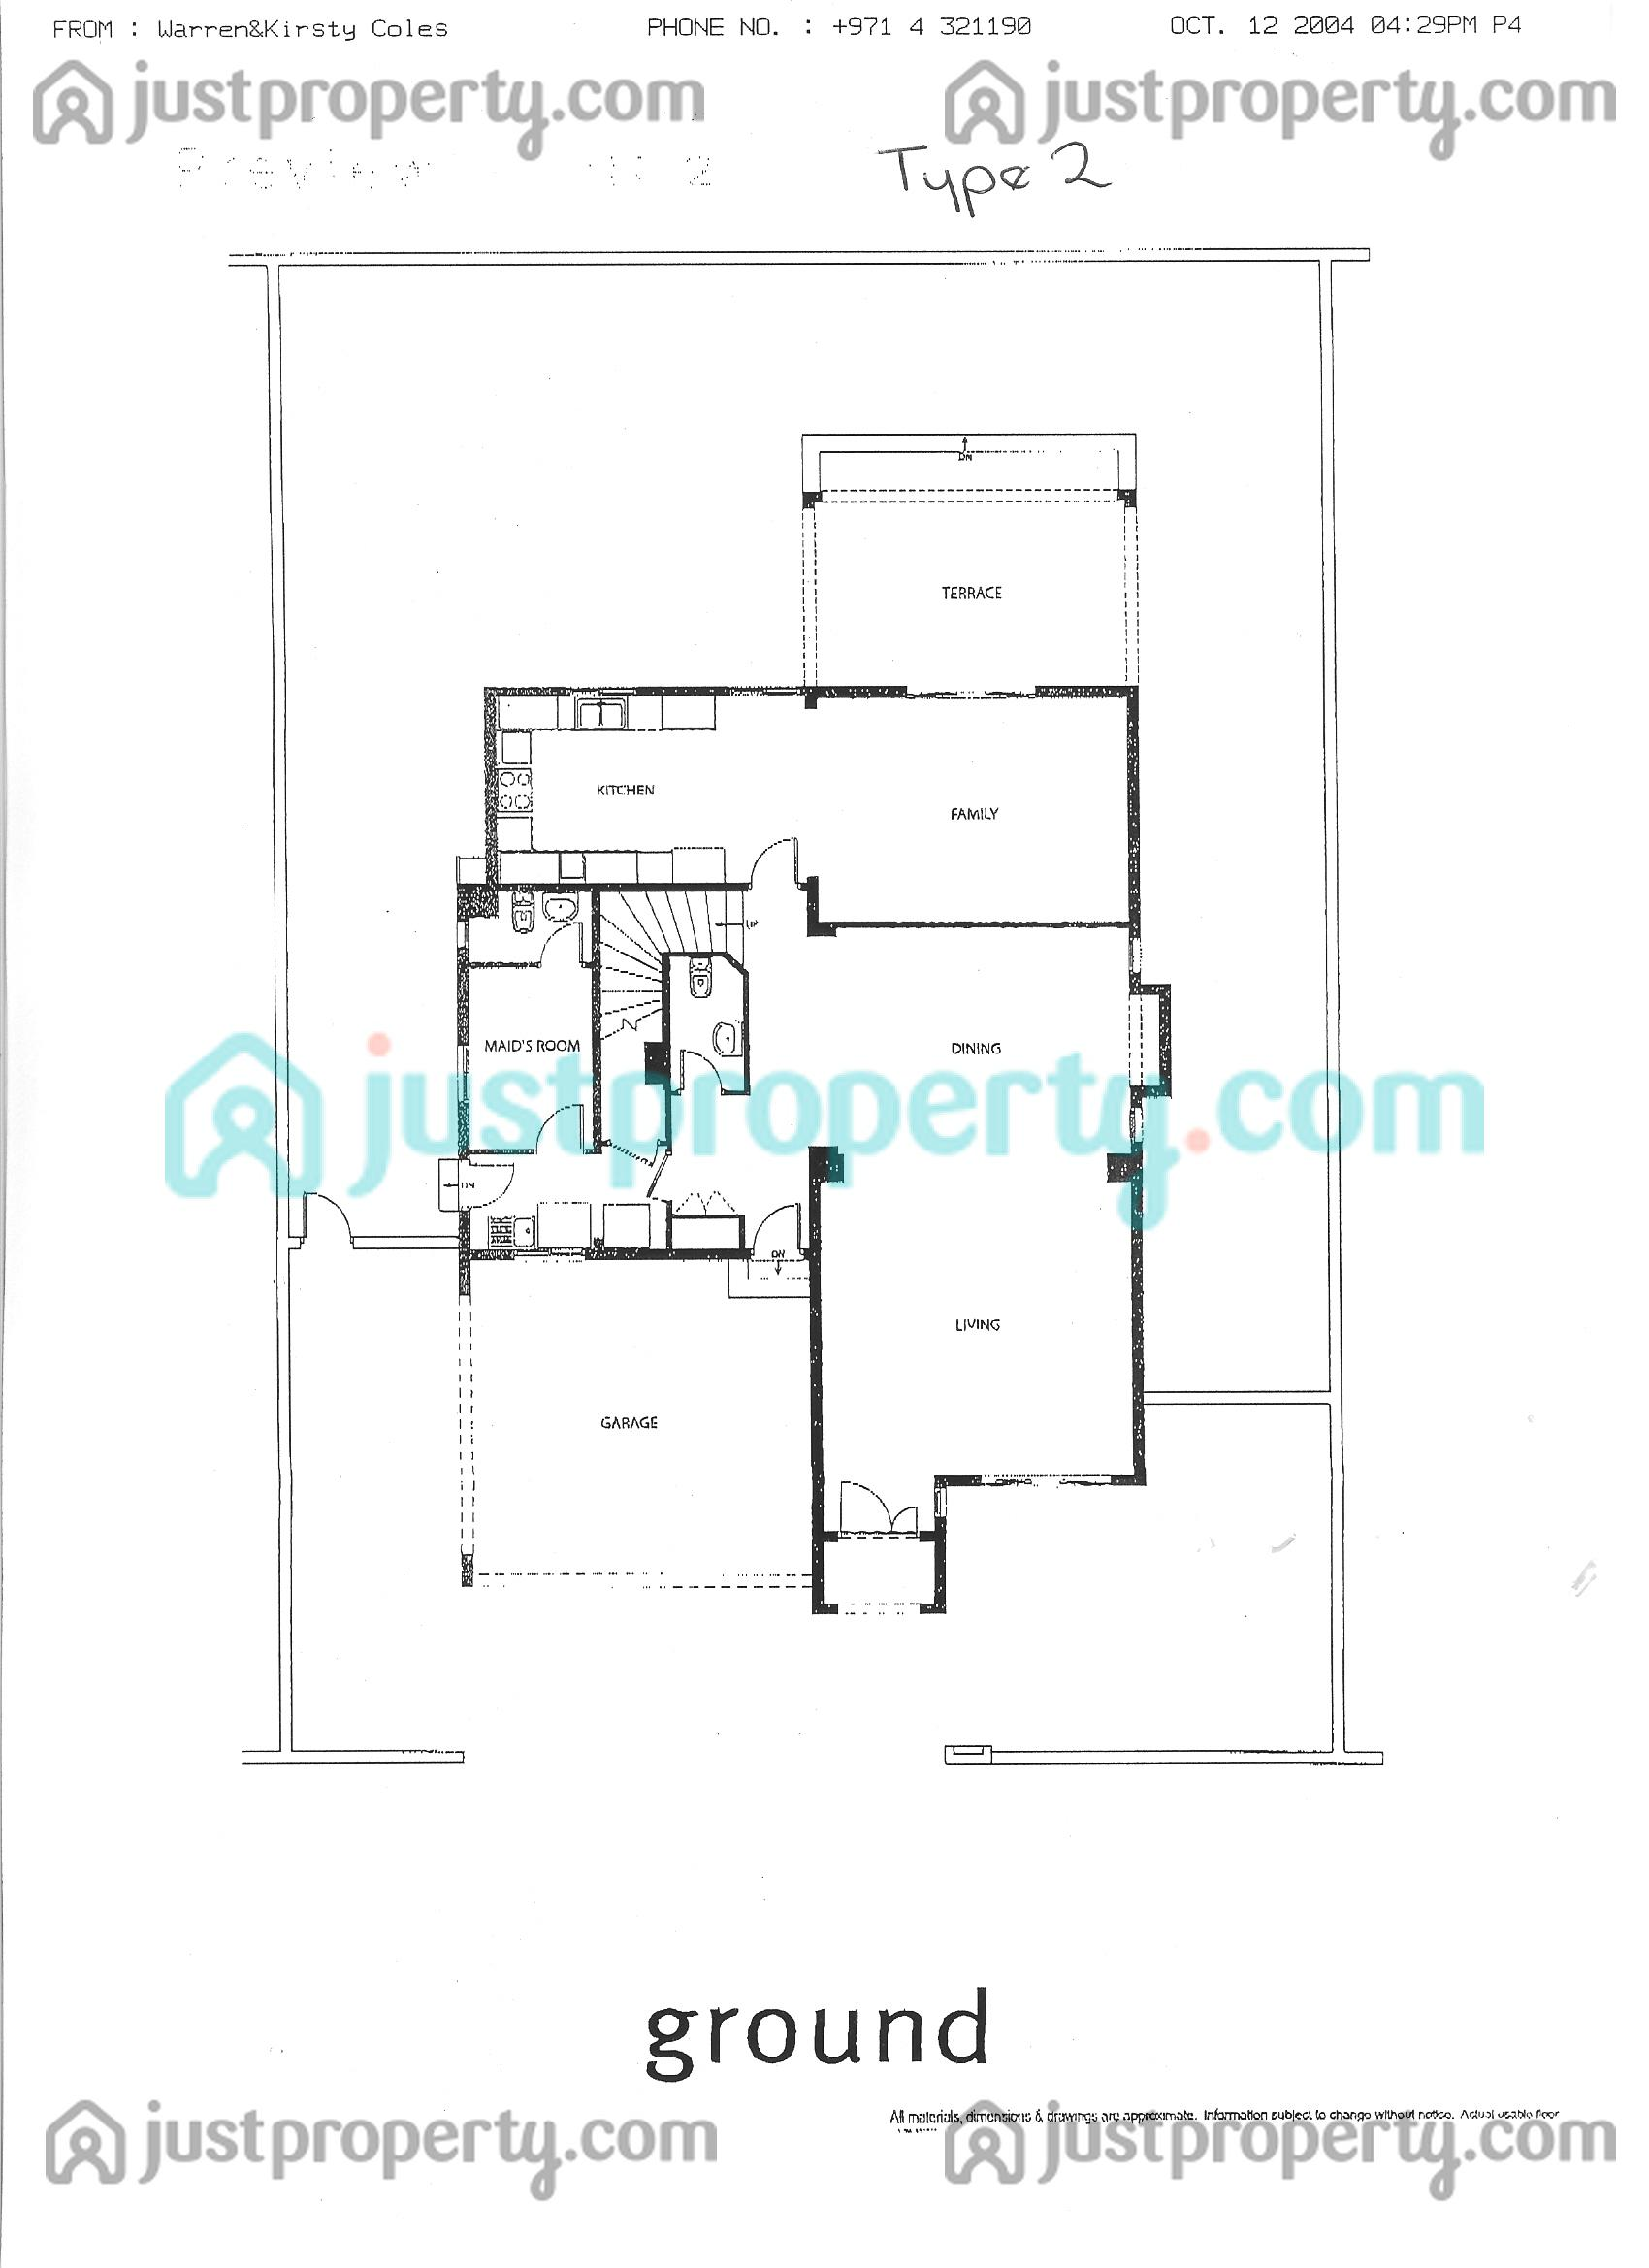 Meadows Villas Floor Plans | JustProperty.com